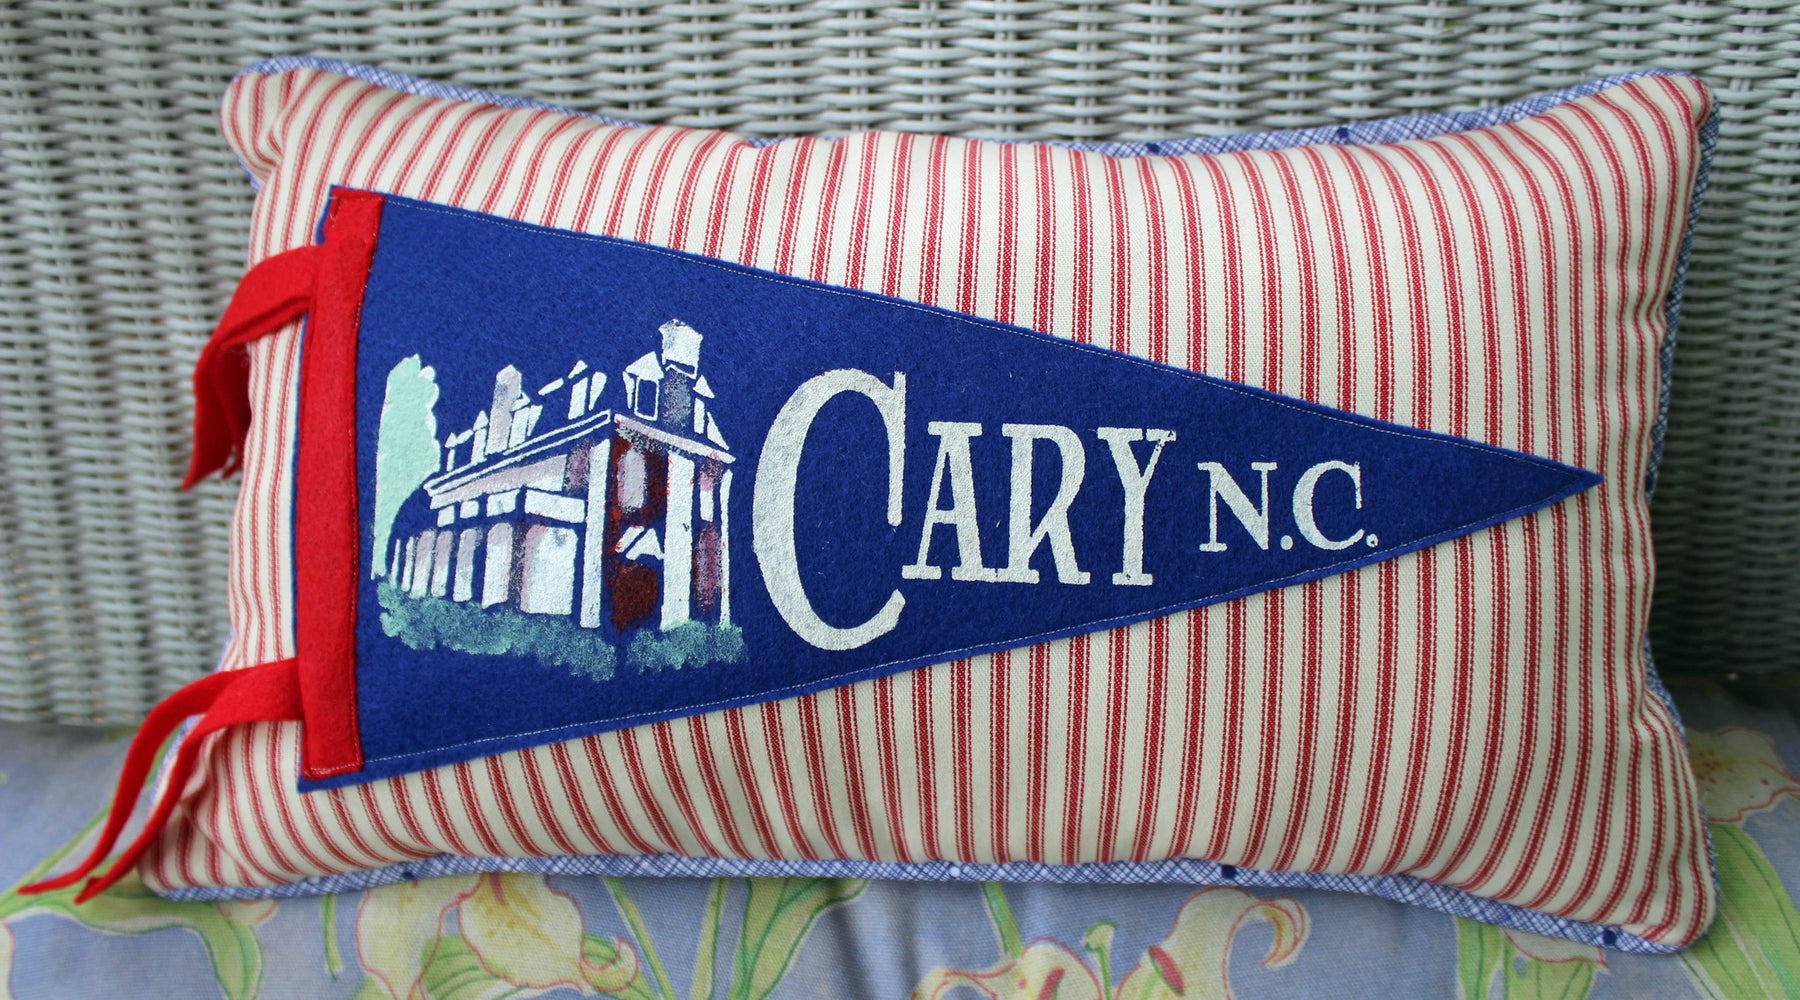 vintage pennant pillow Cary NC